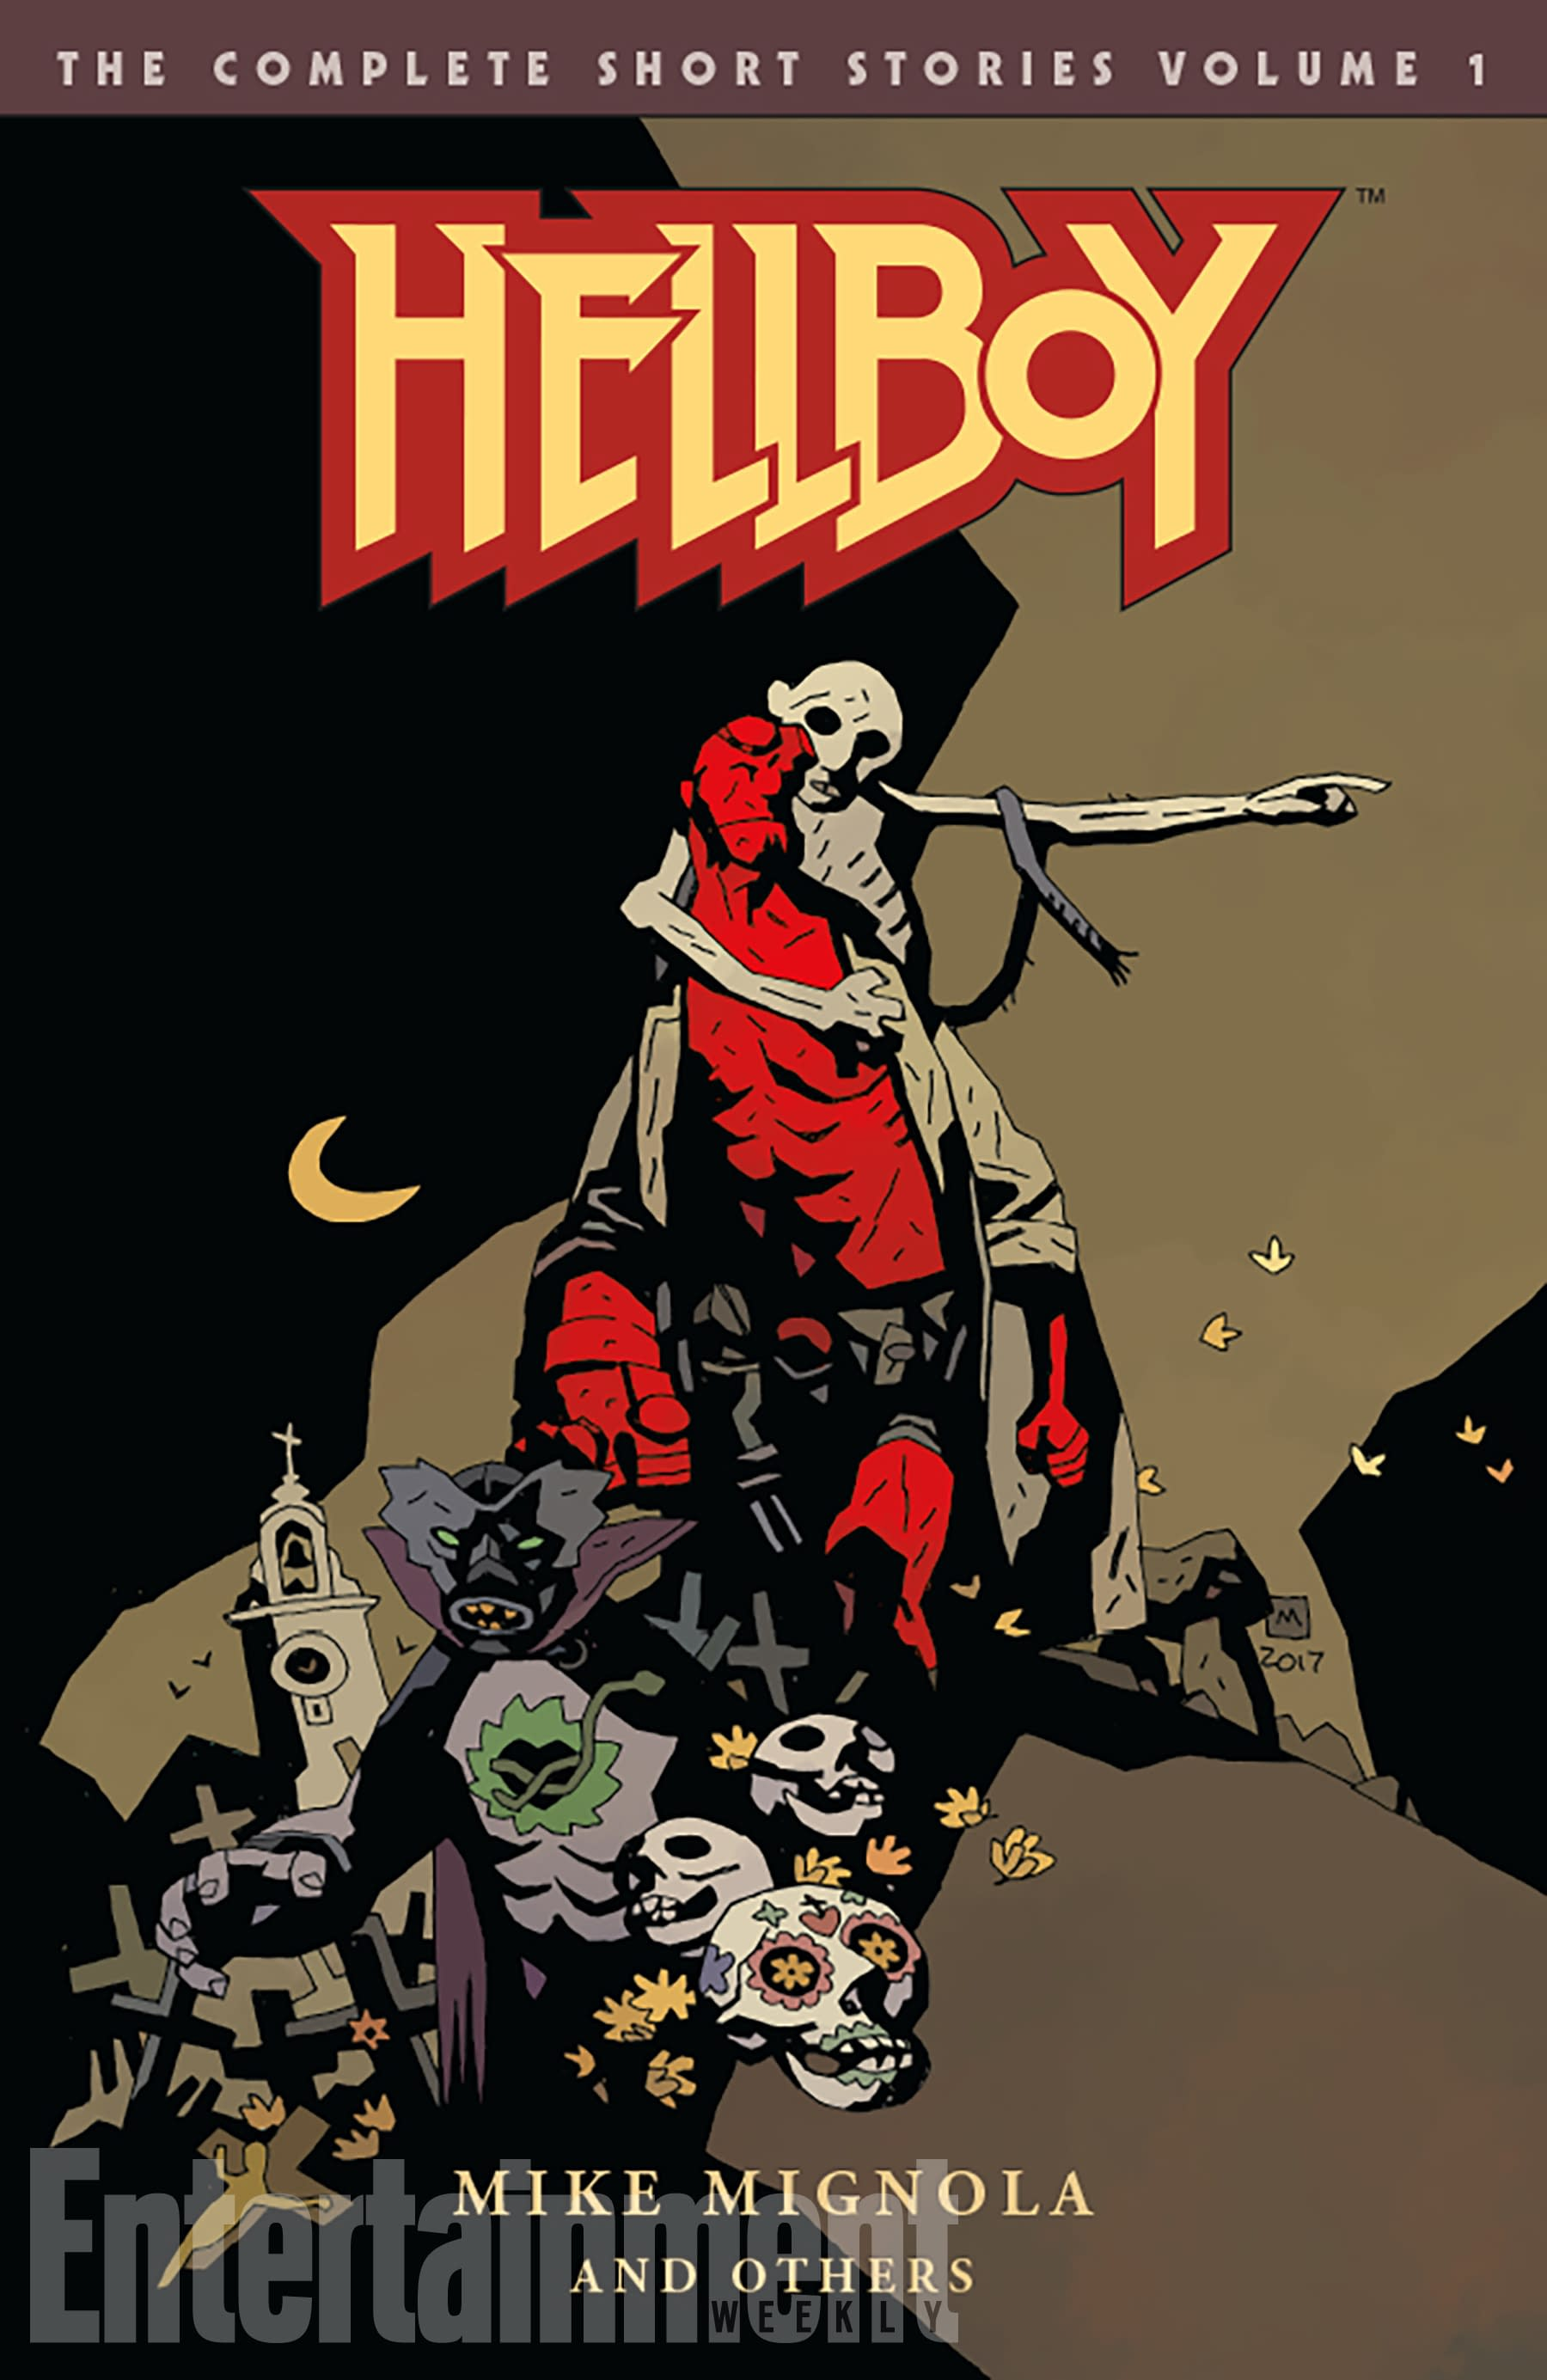 New Dark Horse 'Hellboy' Omnibus Covers By Mike Mignola Unveiled